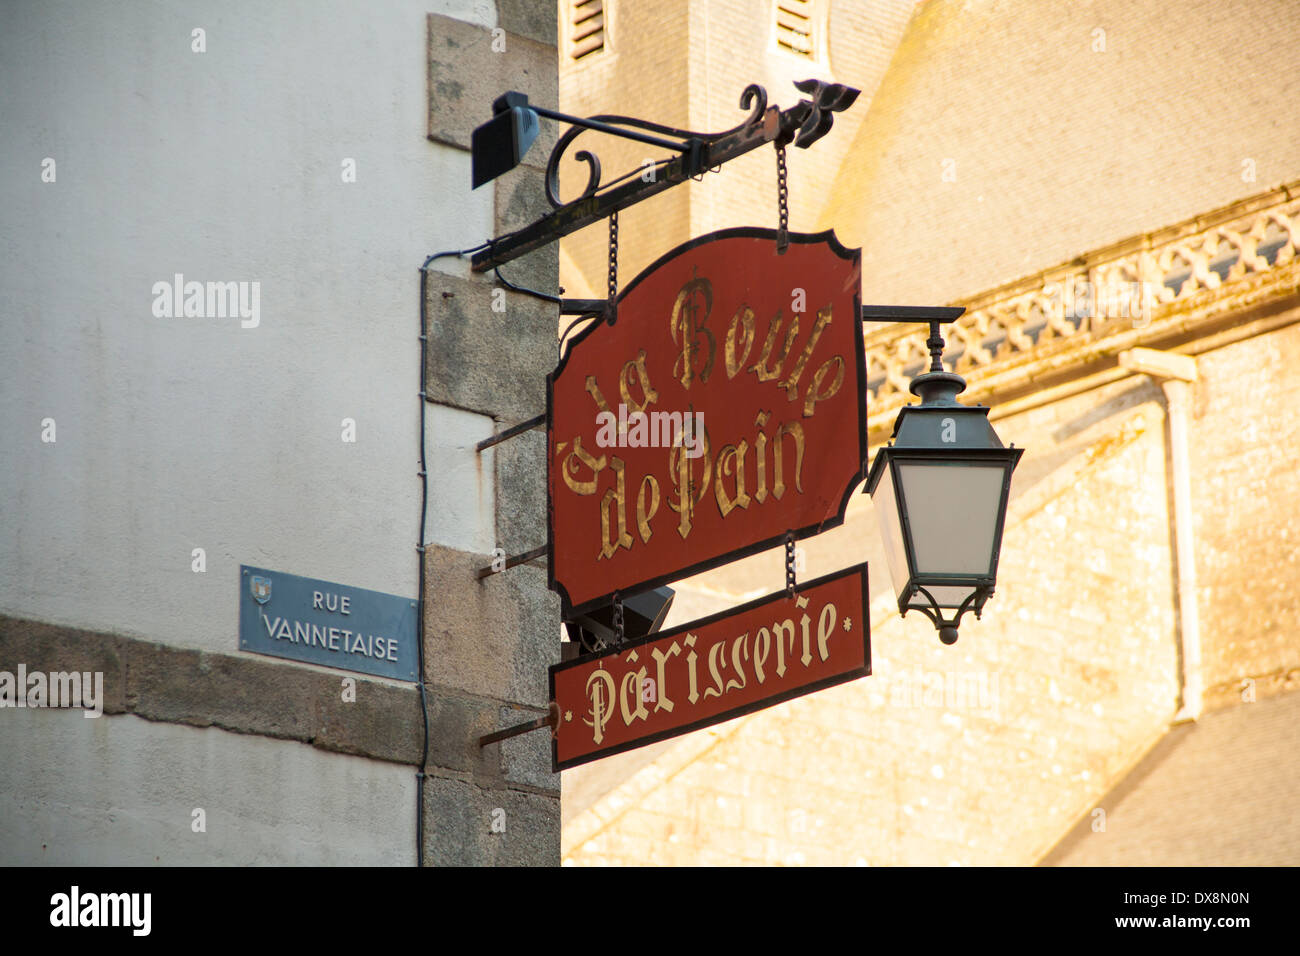 French patisserie sign with carriage lamp - Stock Image